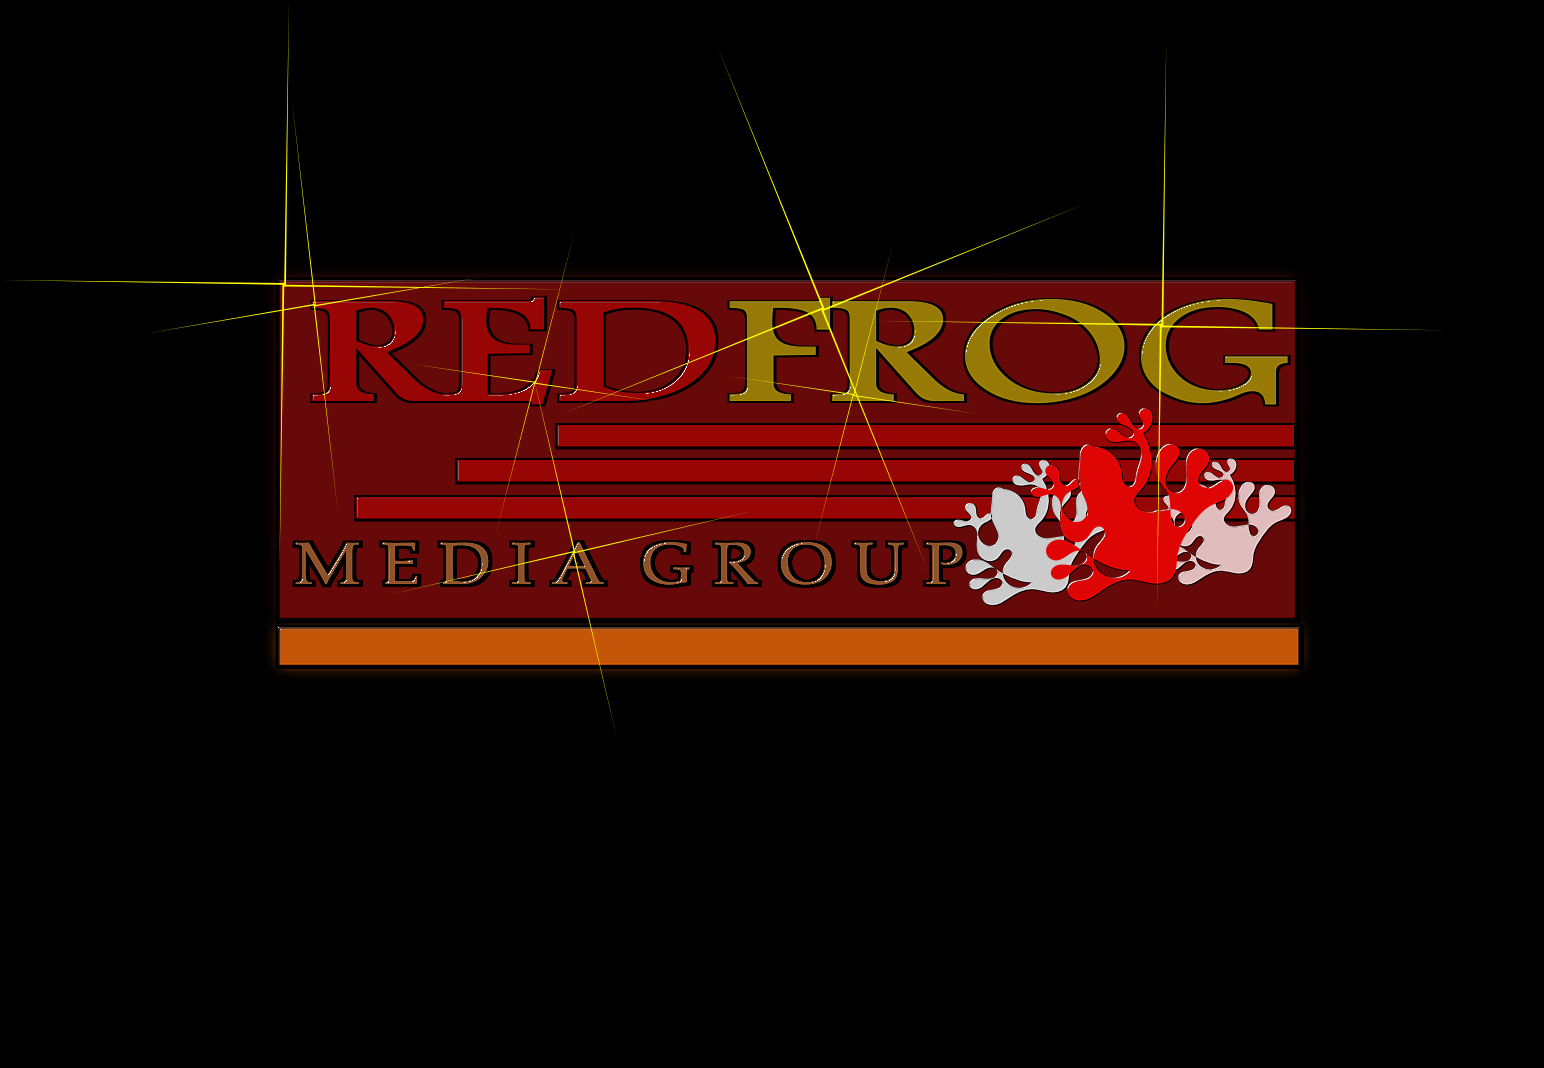 Logo Design by Joseph calunsag Cagaanan - Entry No. 23 in the Logo Design Contest New Logo Design for Red Frog Media Group.